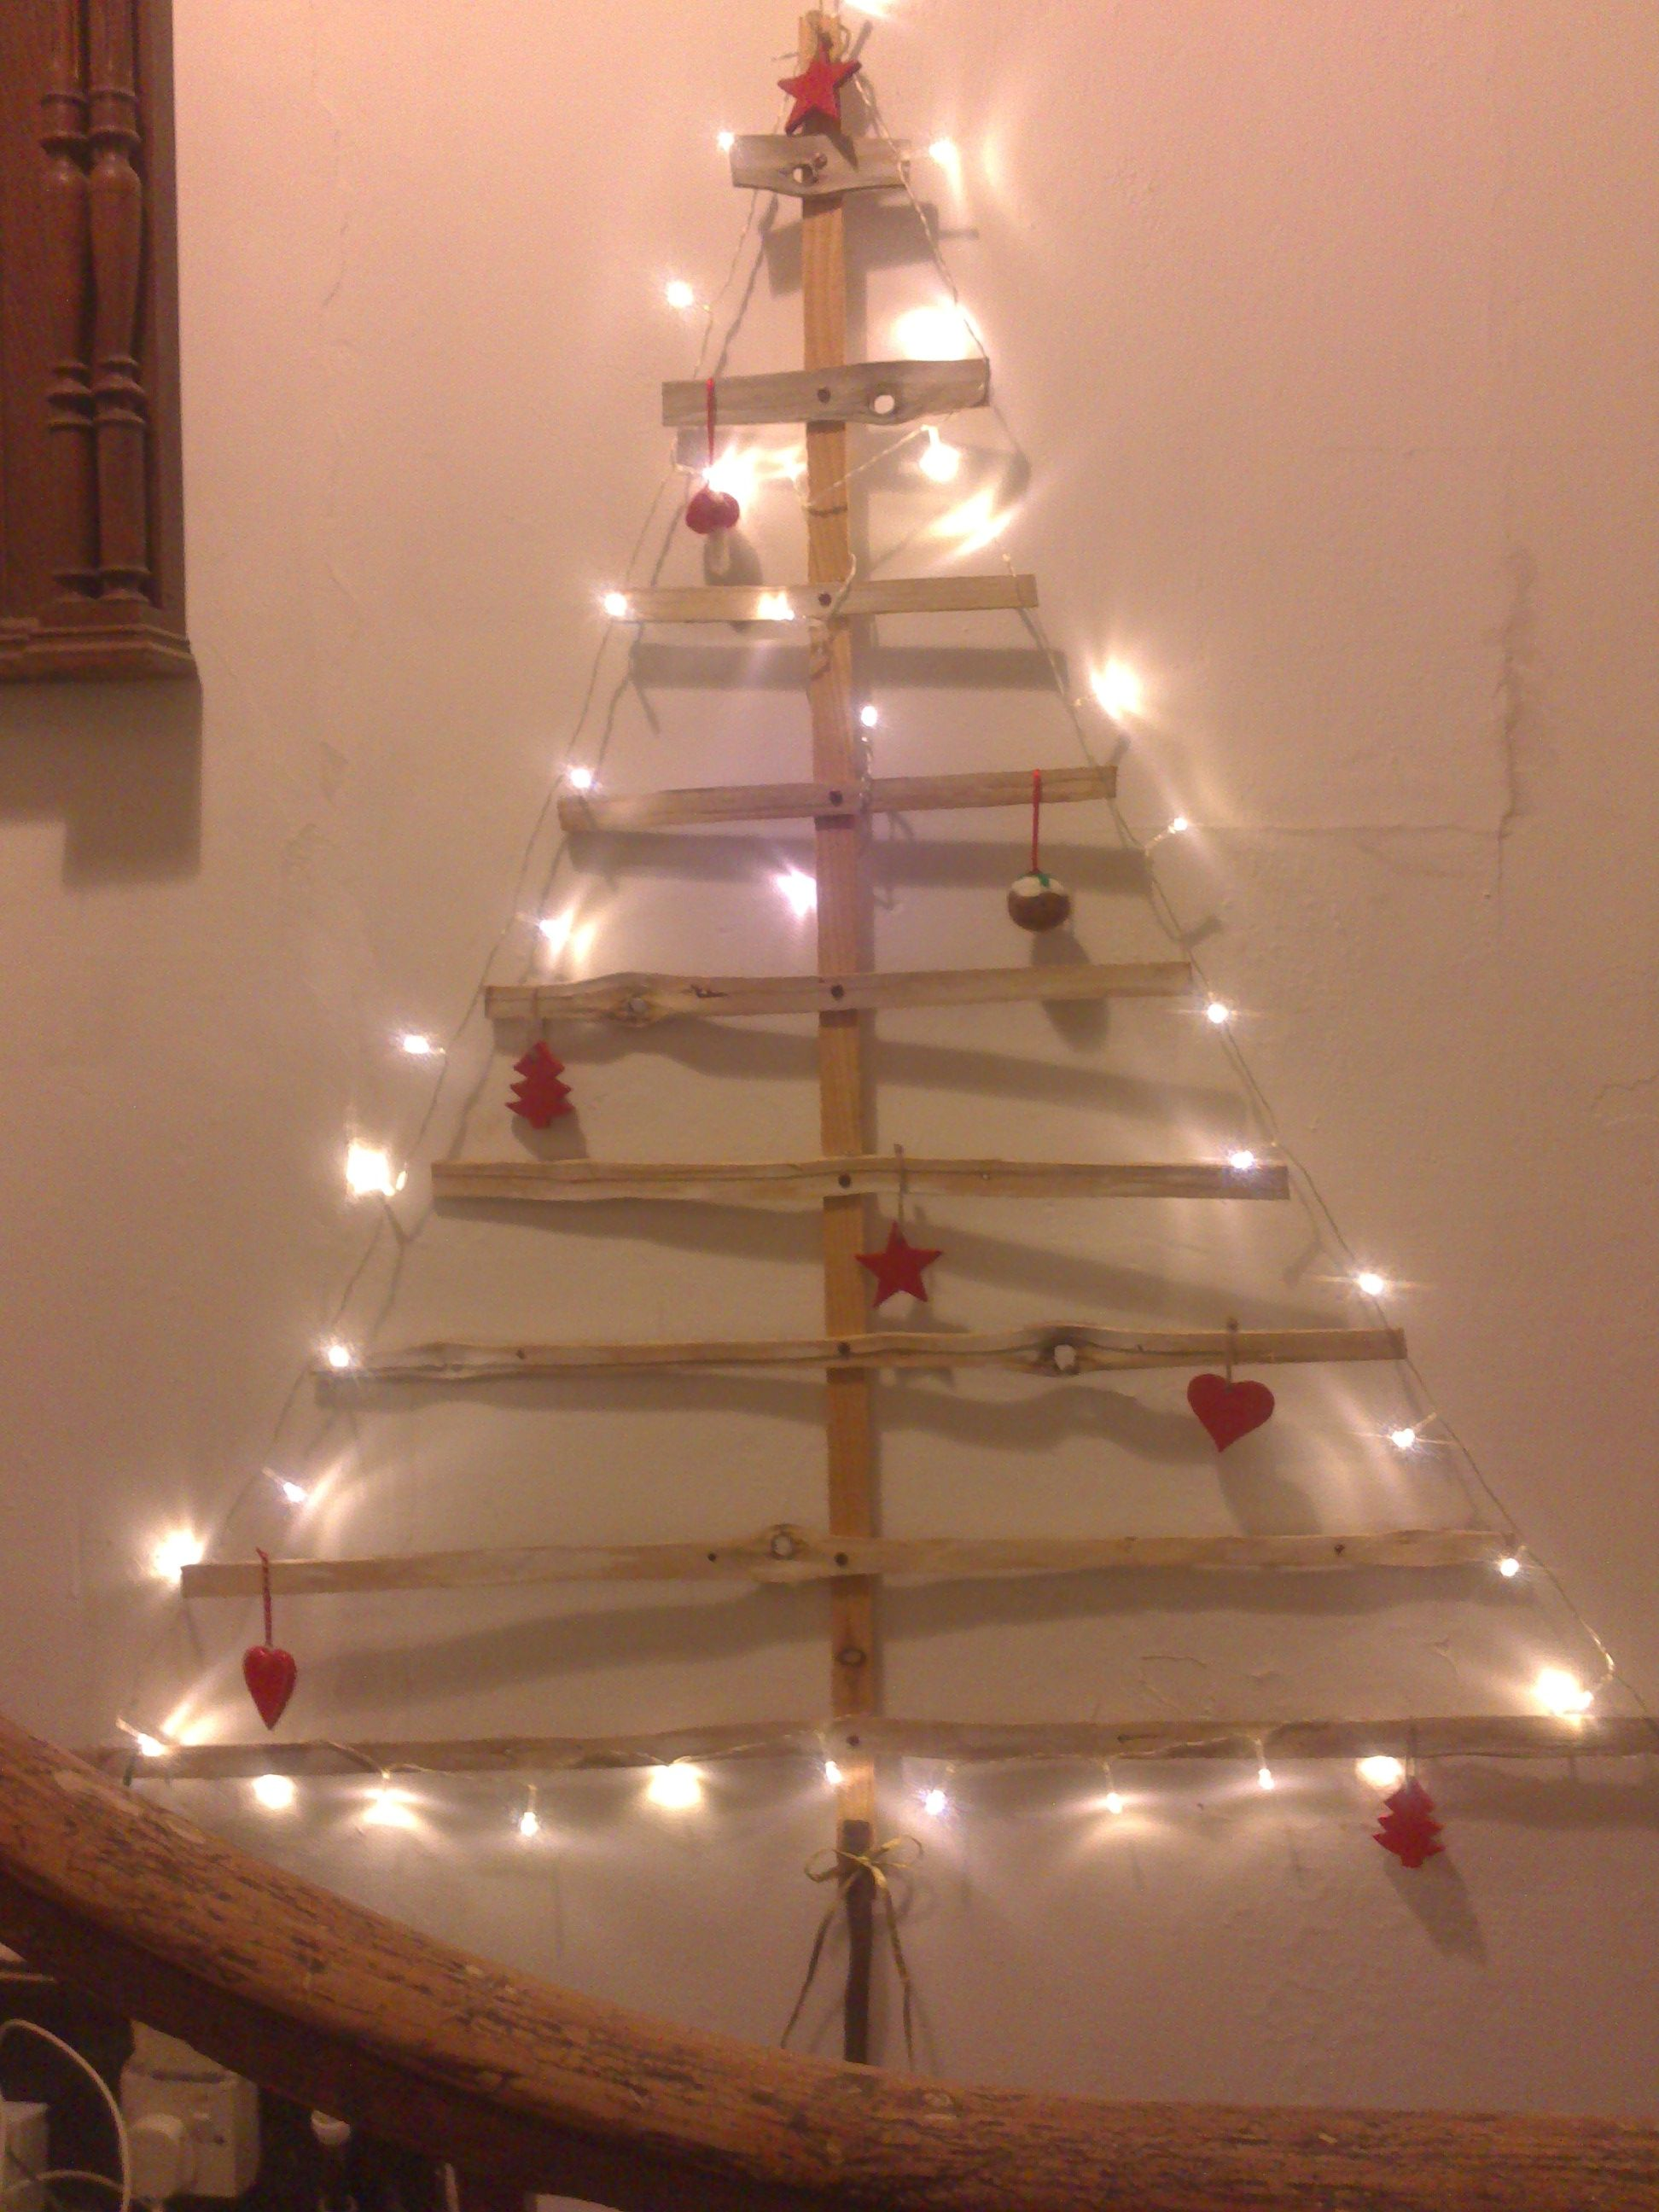 Our tree might not be green - but it's definitely GREEN - it's made from recycled laths